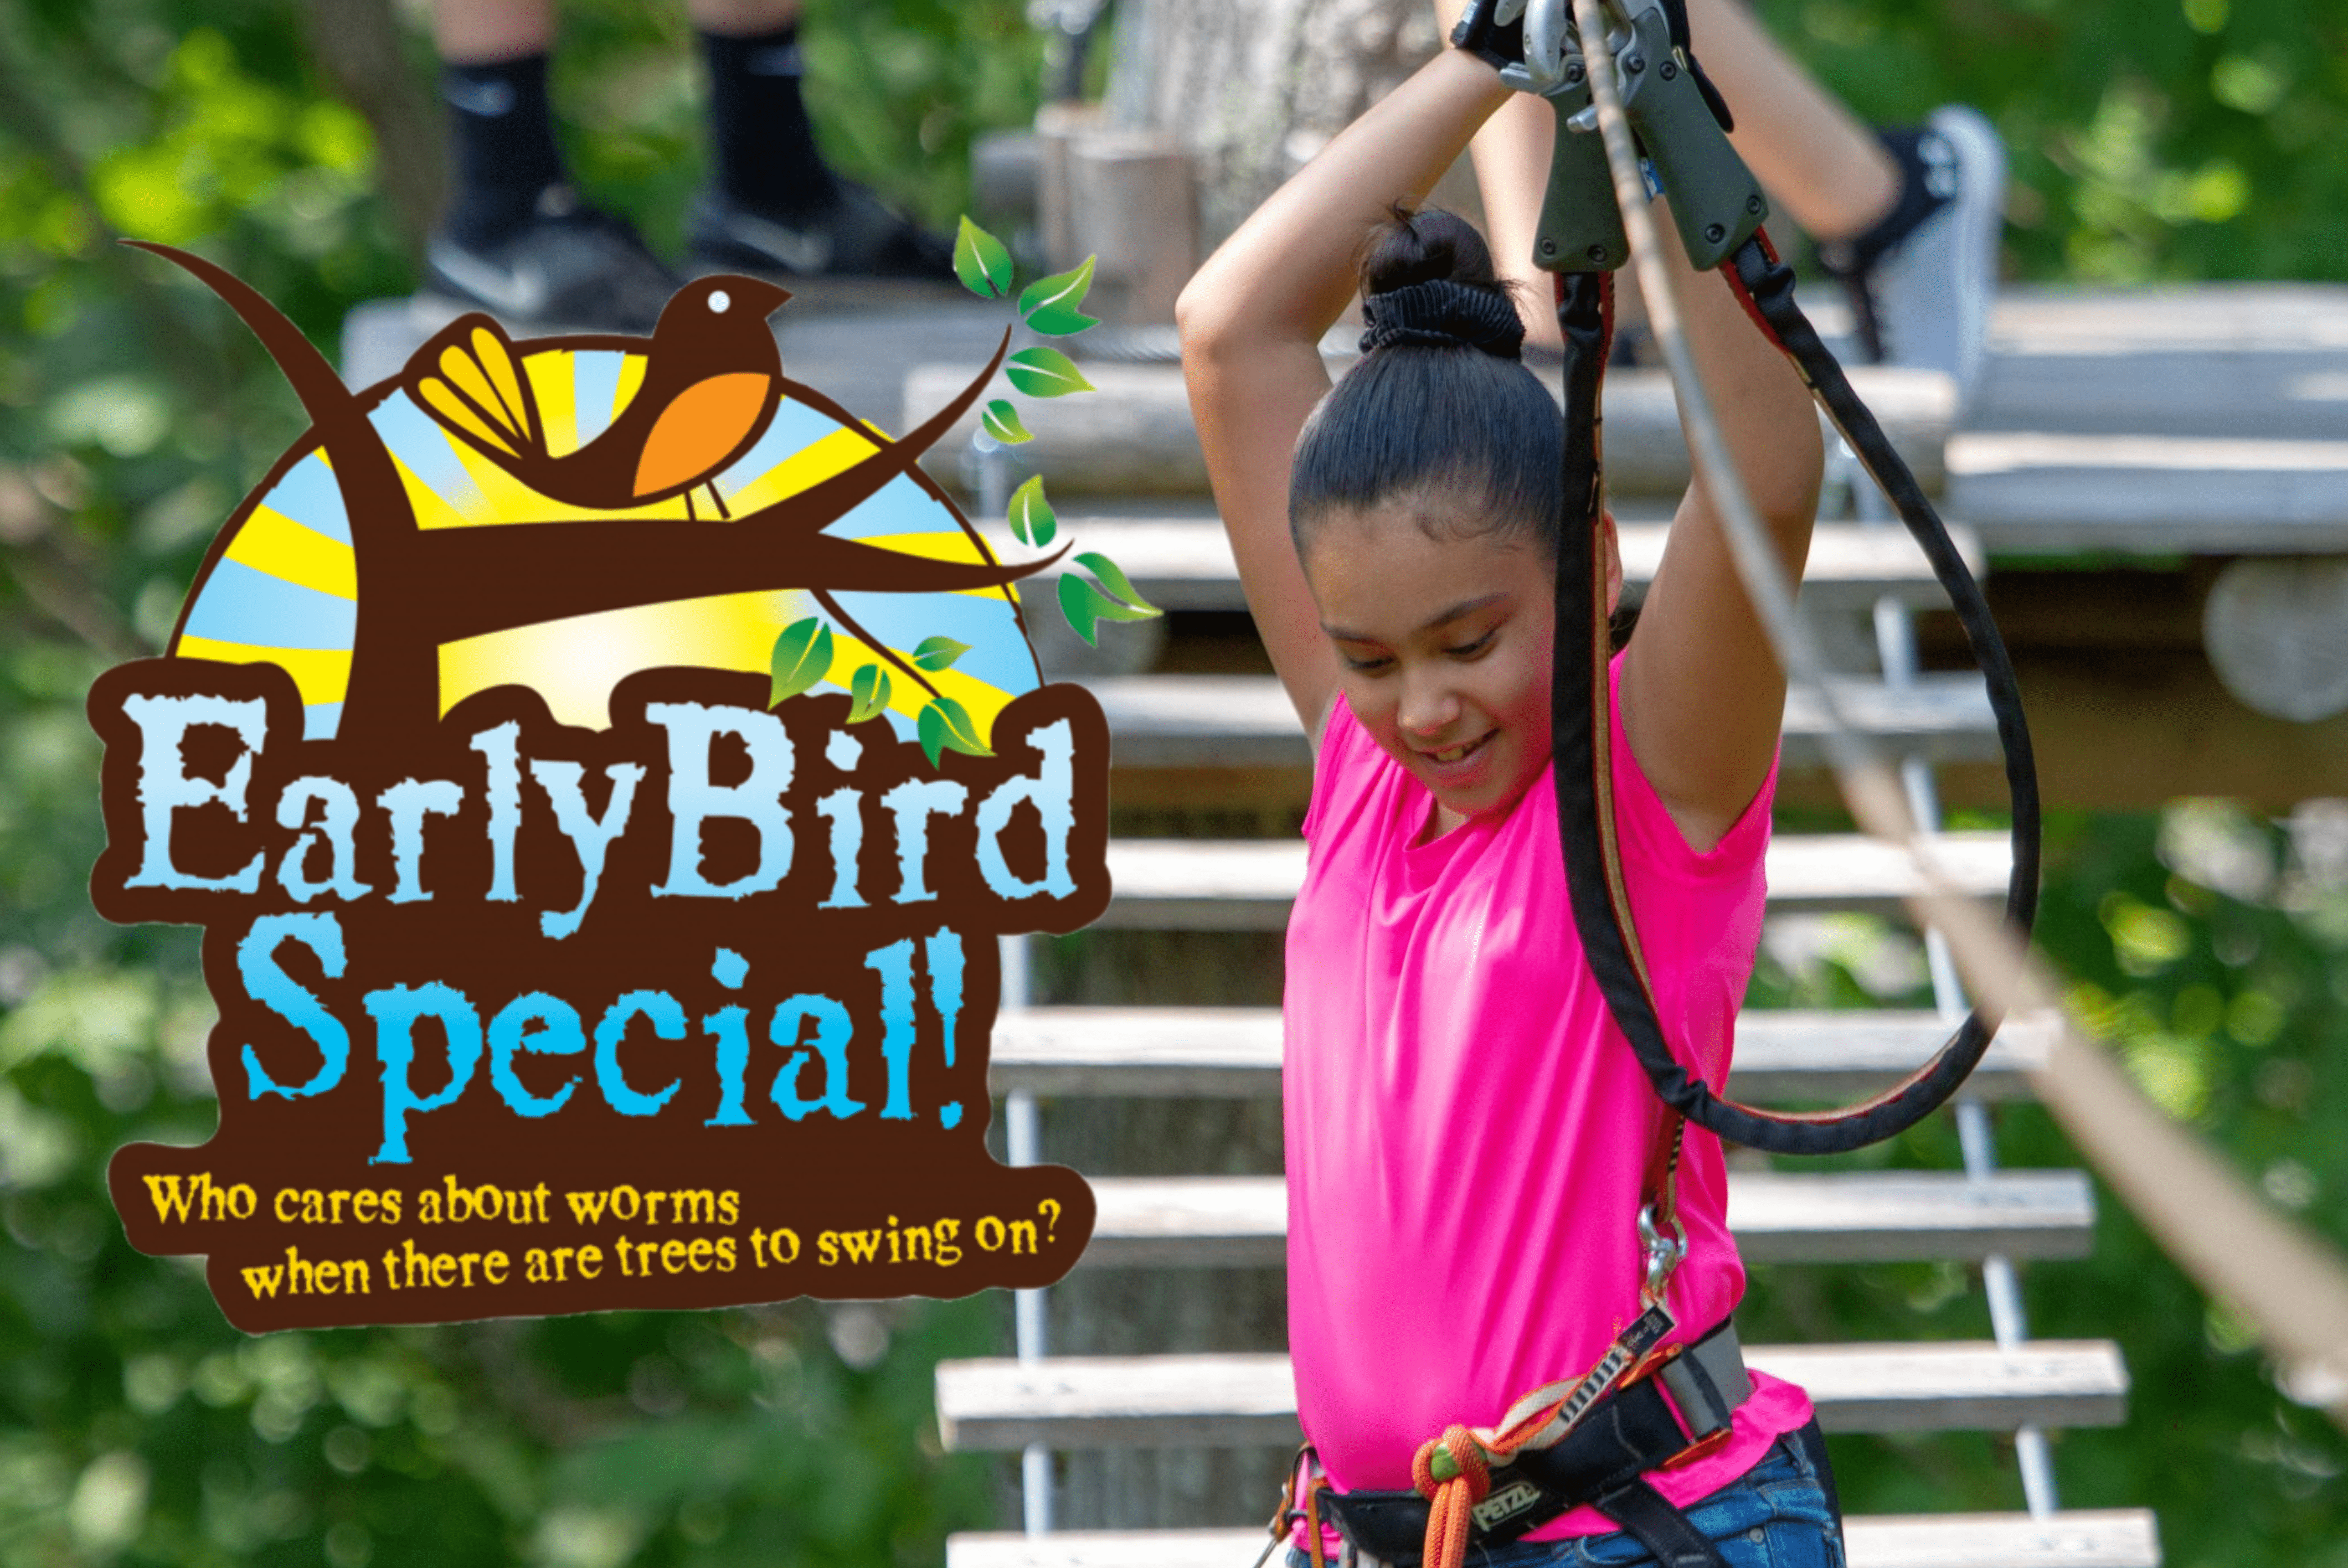 Early Bird Special! Save $15 on select early bird admissions